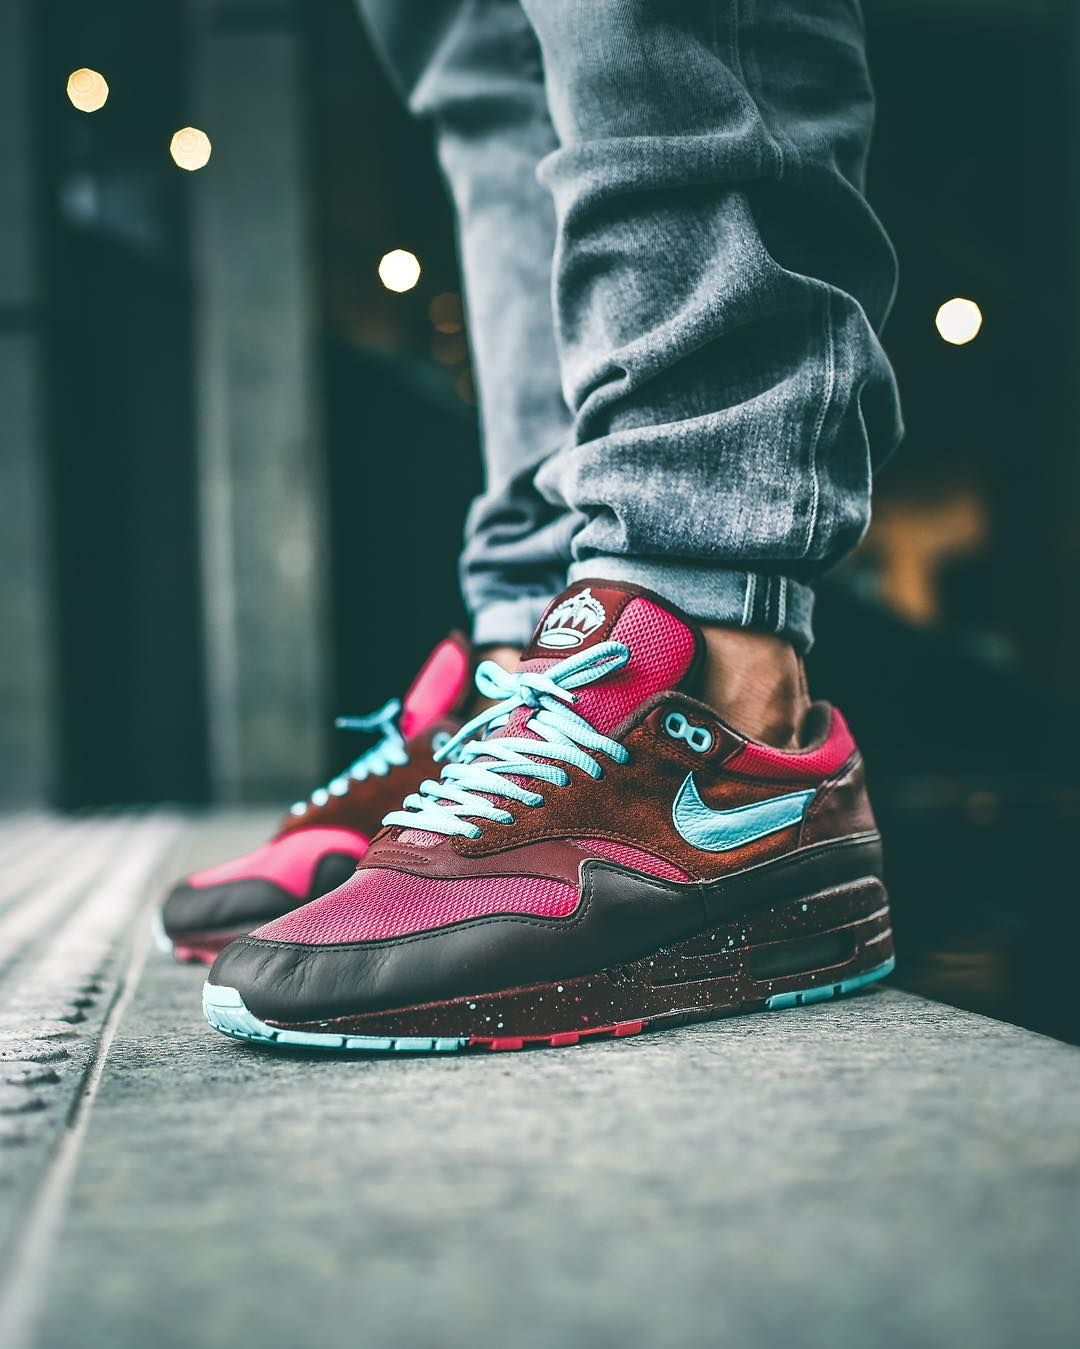 42aaf8039ee Women Shoes in 2019 | shoes for men | Nike air max, Air max ...